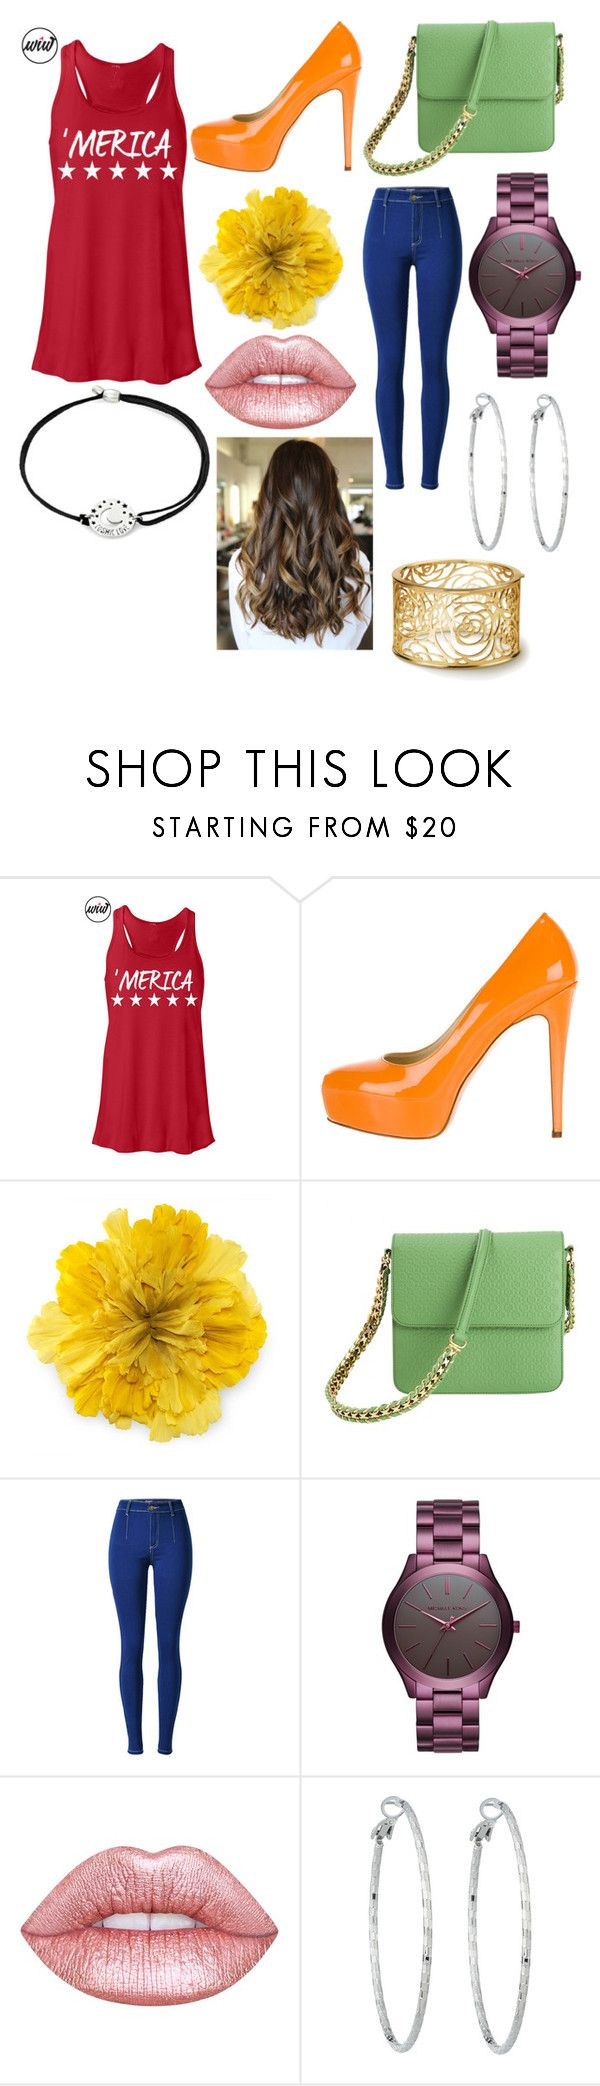 """""""What's Ure Fav Color???"""" by ashleyannmcd ❤ liked on Polyvore featuring Brian Atwood, Gucci, STELLA McCARTNEY, Michael Kors, Lime Crime, Lydell NYC and Alex and Ani"""